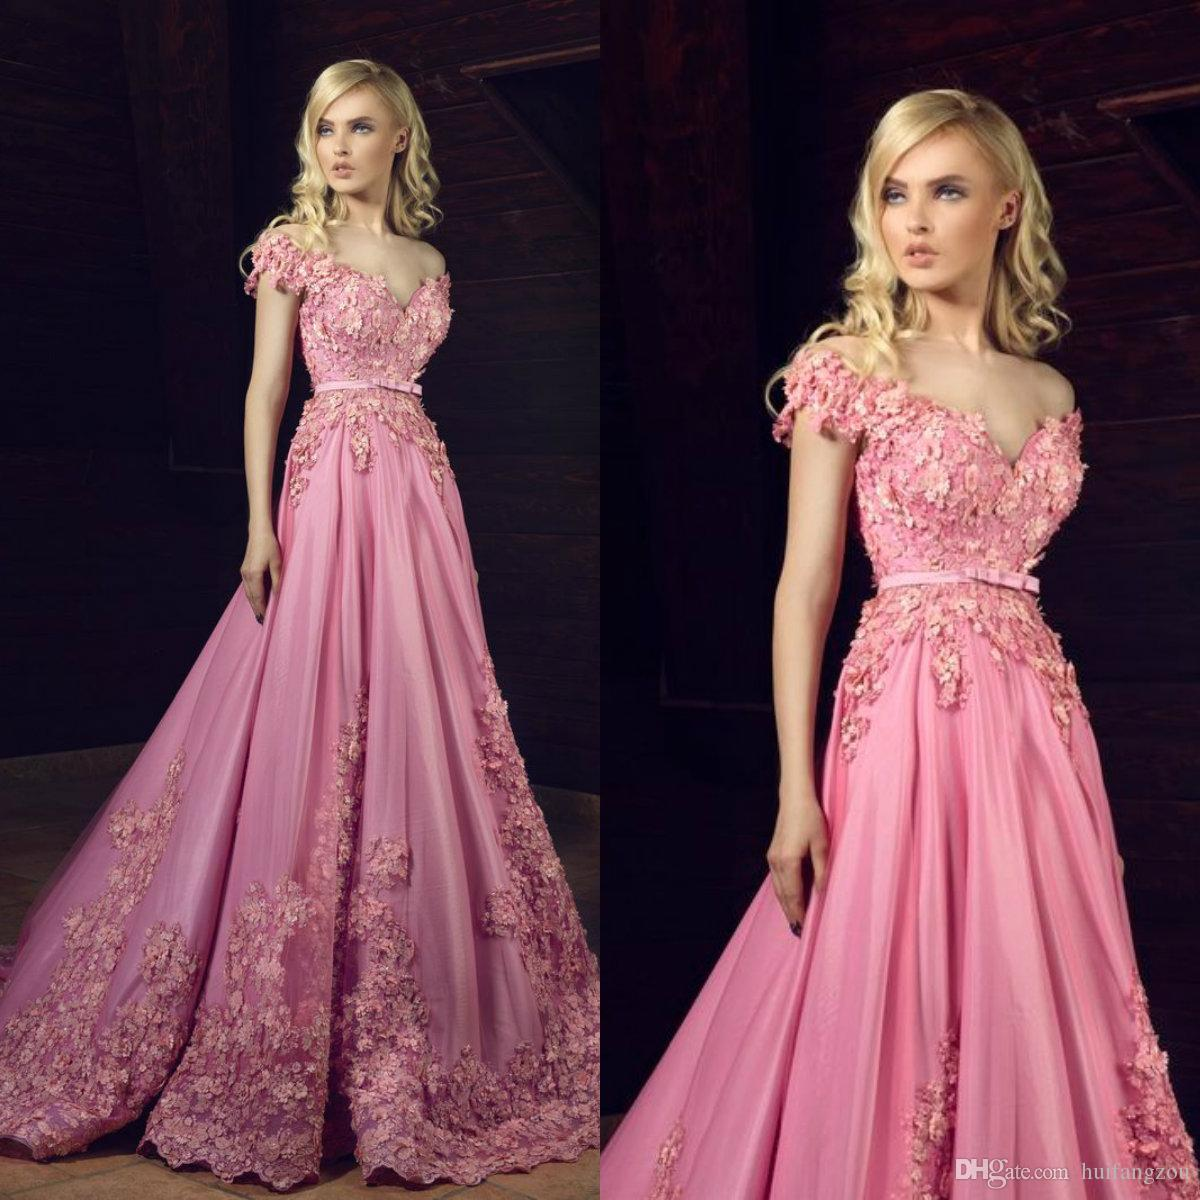 38efbe6a Tony Chaaya 2019 Prom Dresses Off Shoulder 3D Floral Appliques A Line Sweep  Train Evening Dress Custom Made Formal Party Gowns Fast Shipping Prom  Dresses ...